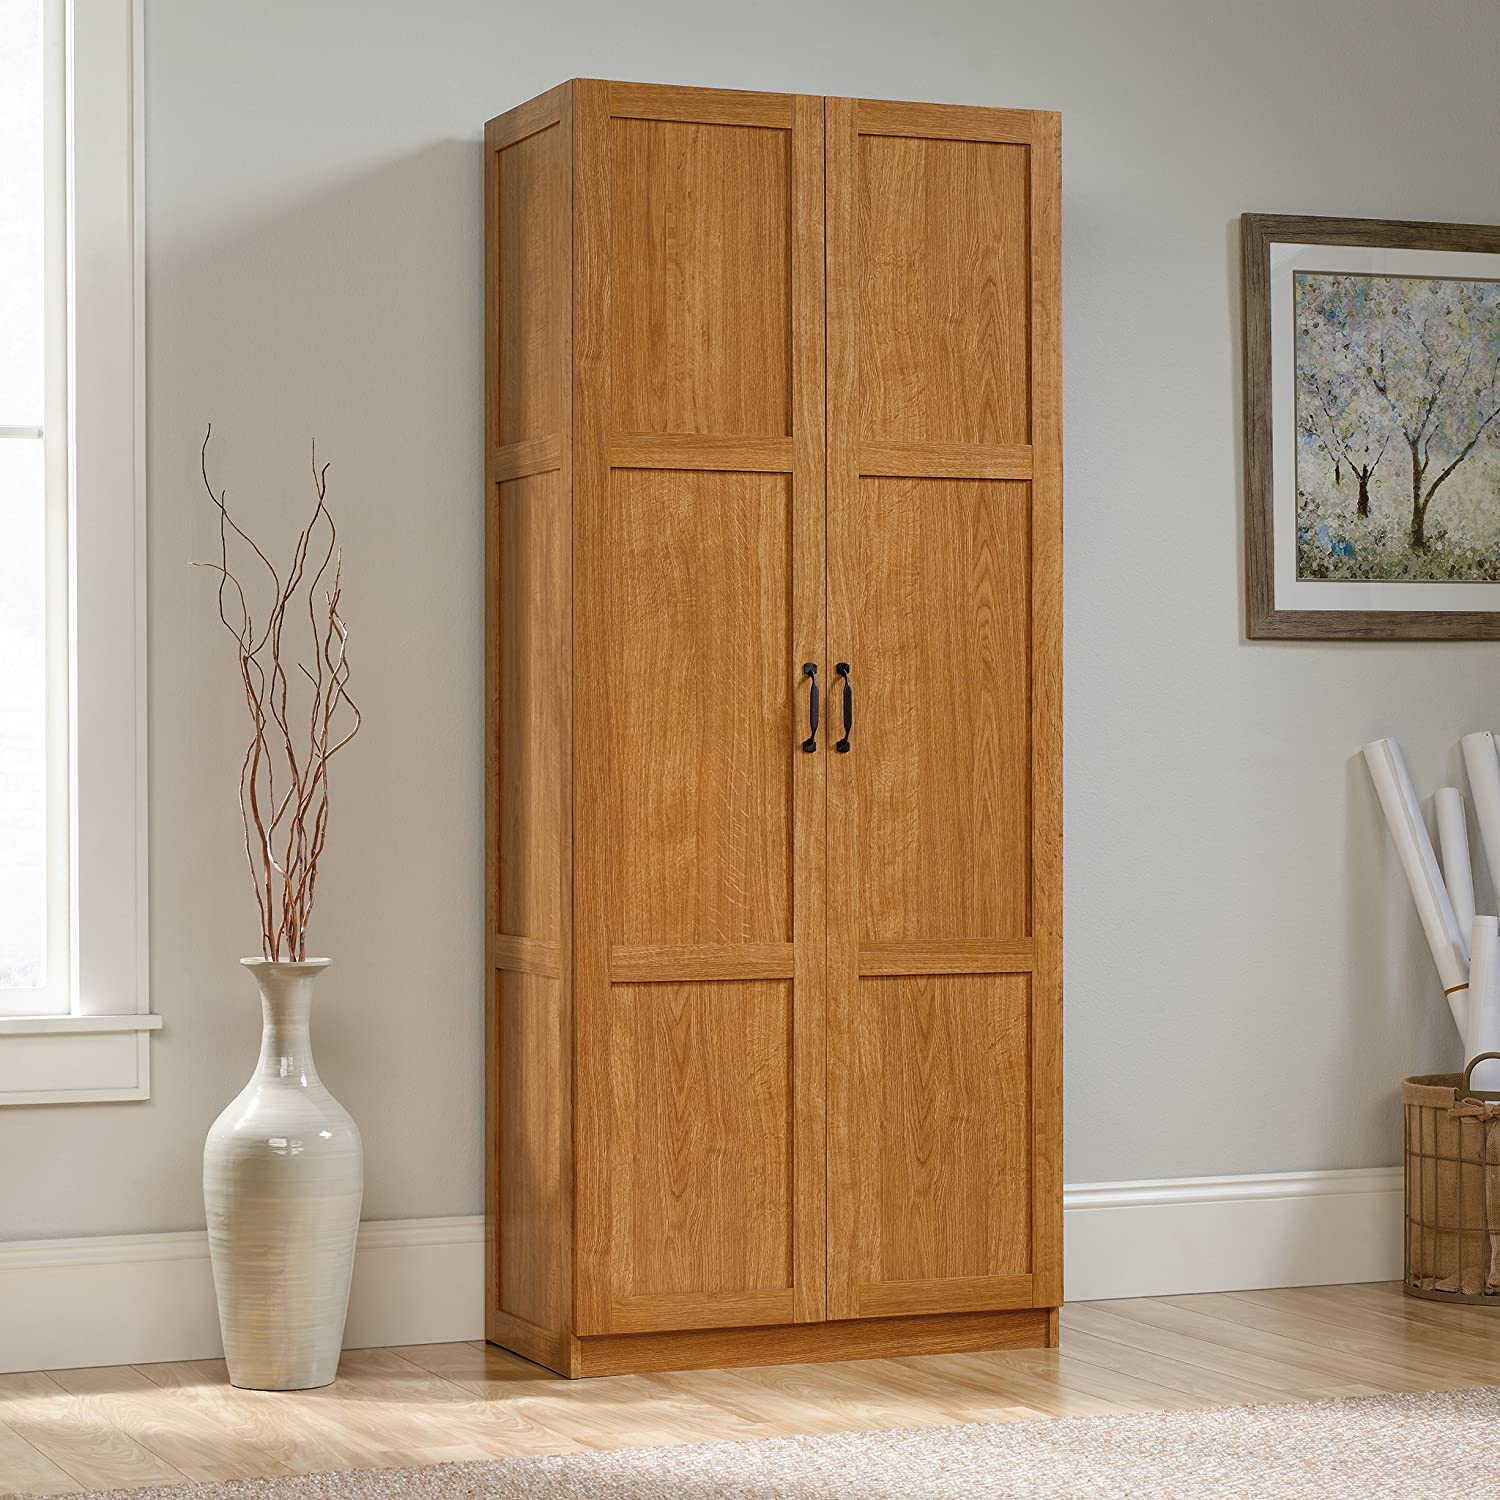 Amazon.com: Sauder Storage Cabinet, Highland Oak Finish: Kitchen ...